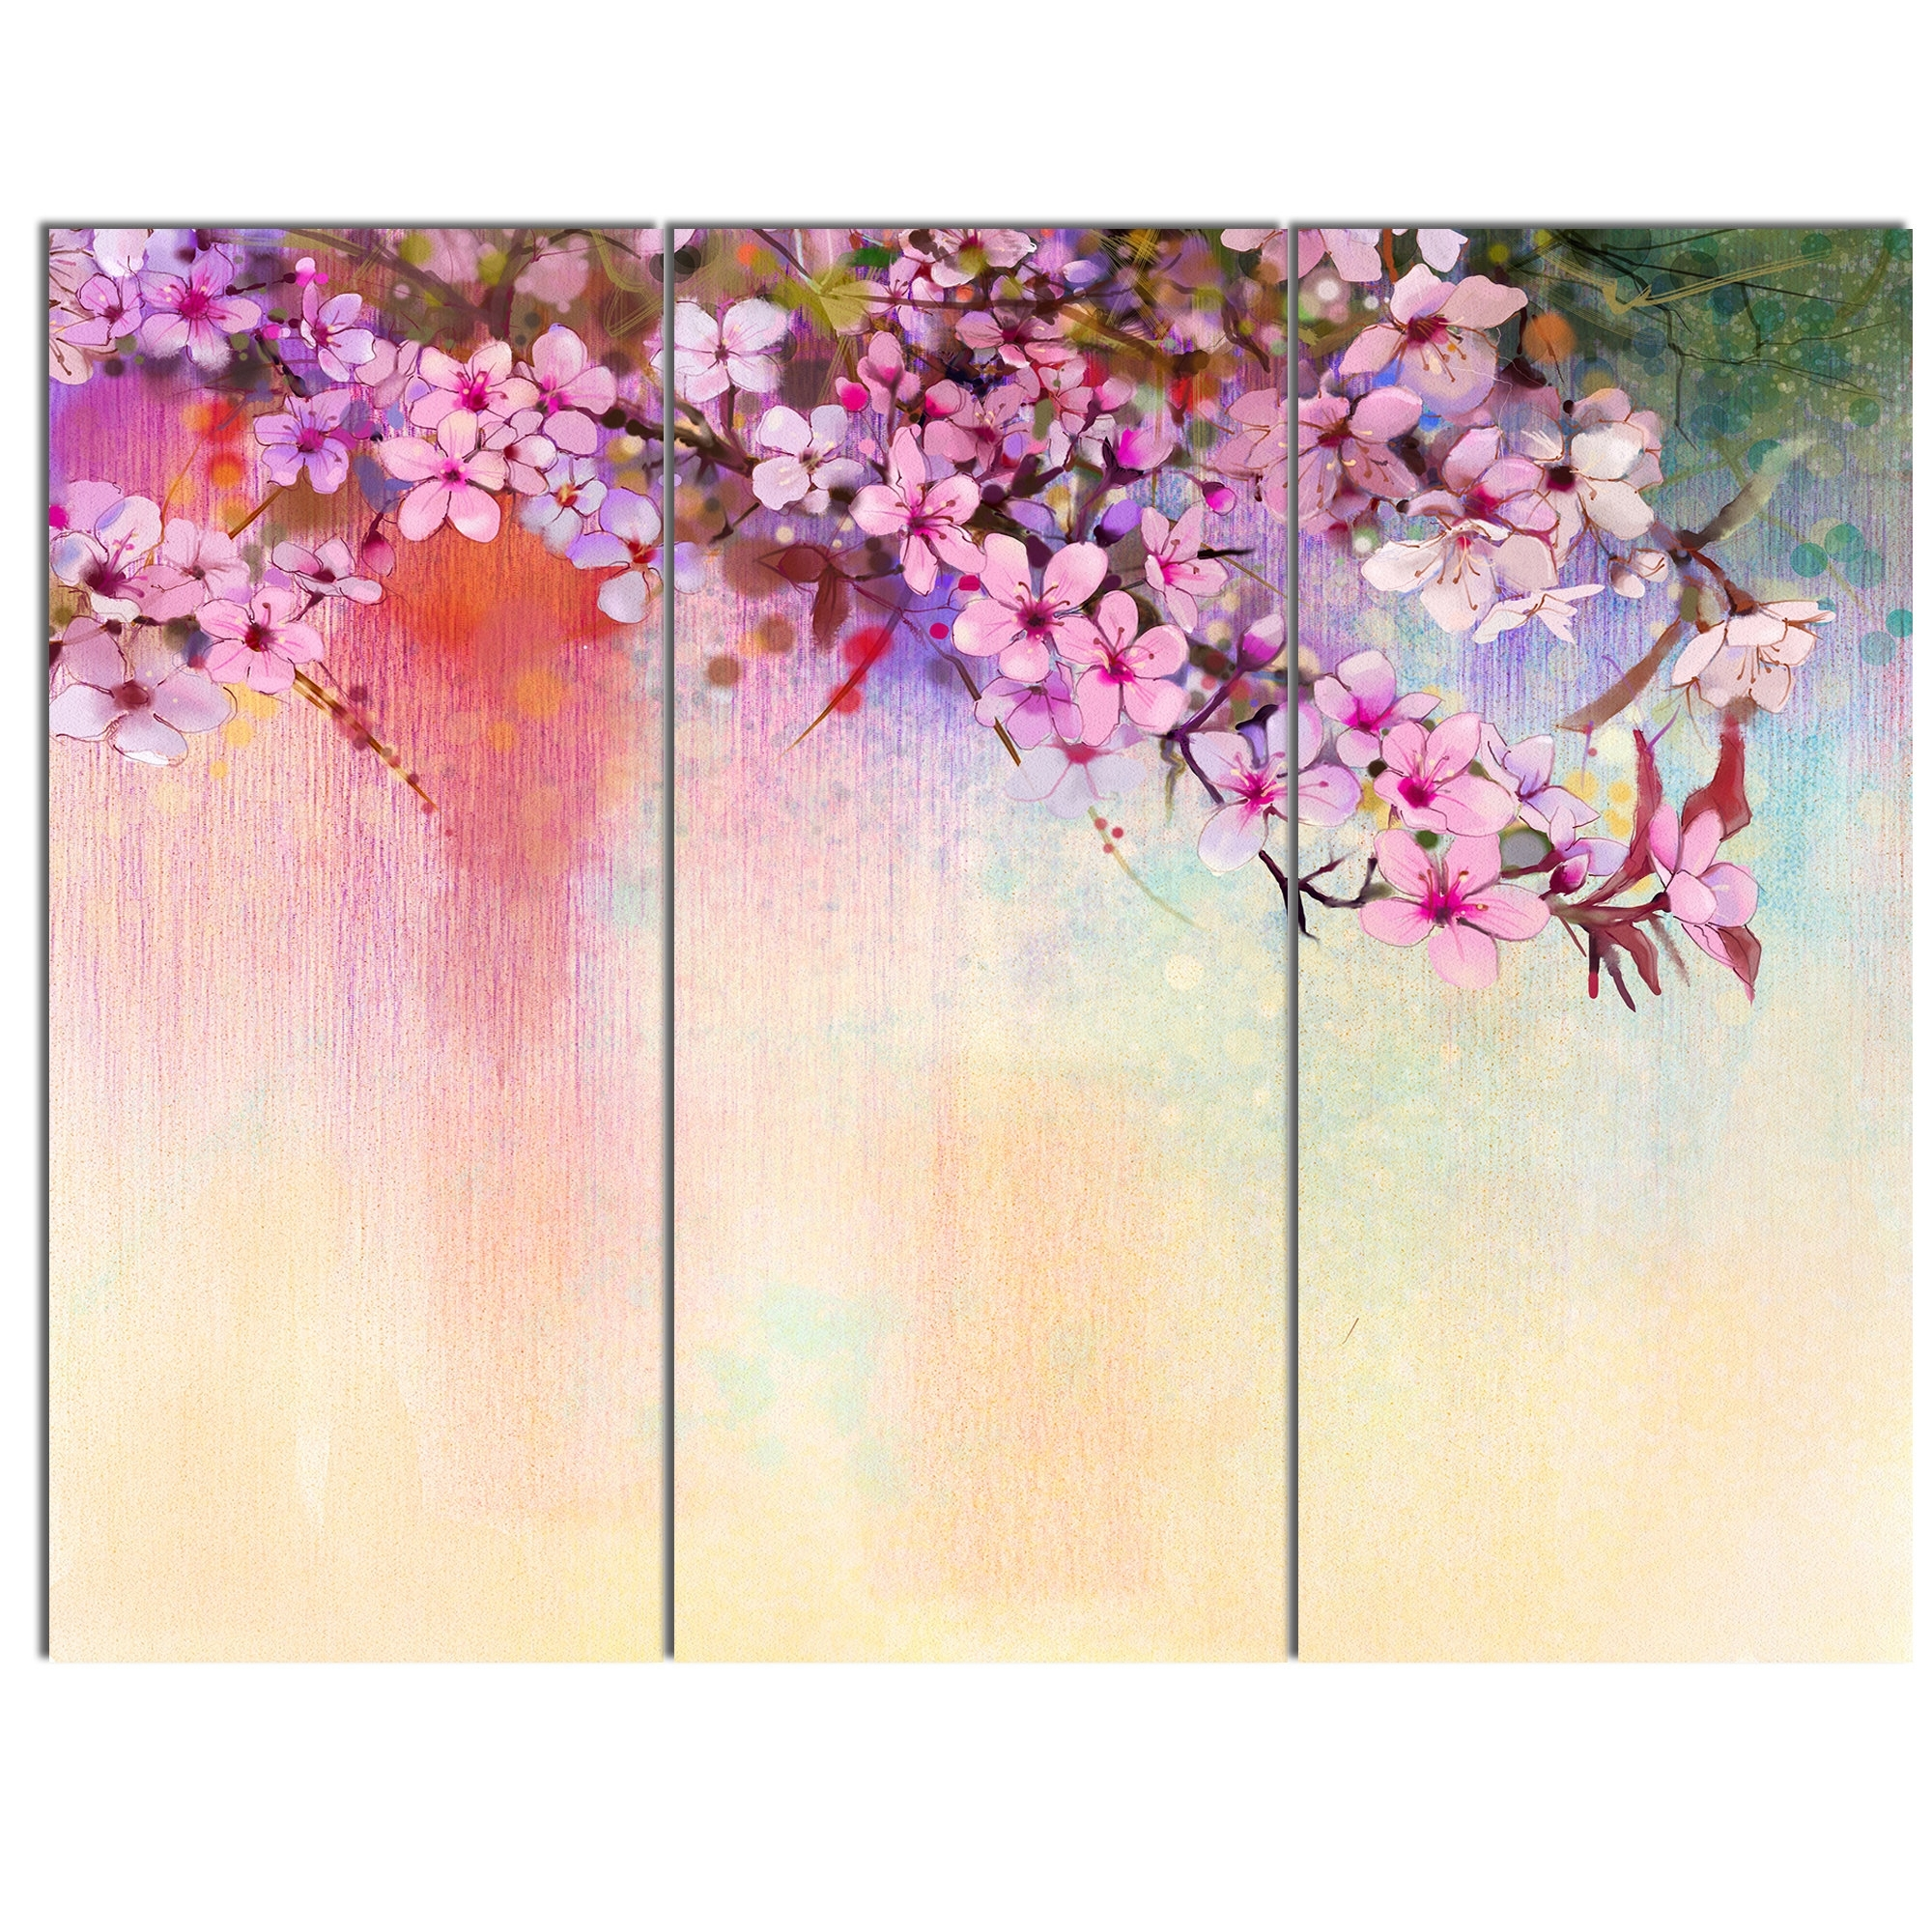 Designart 'watercolor Painting Cherry Blossoms' 3 Piece Wall Art On throughout Cherry Blossom Wall Art (Image 12 of 20)